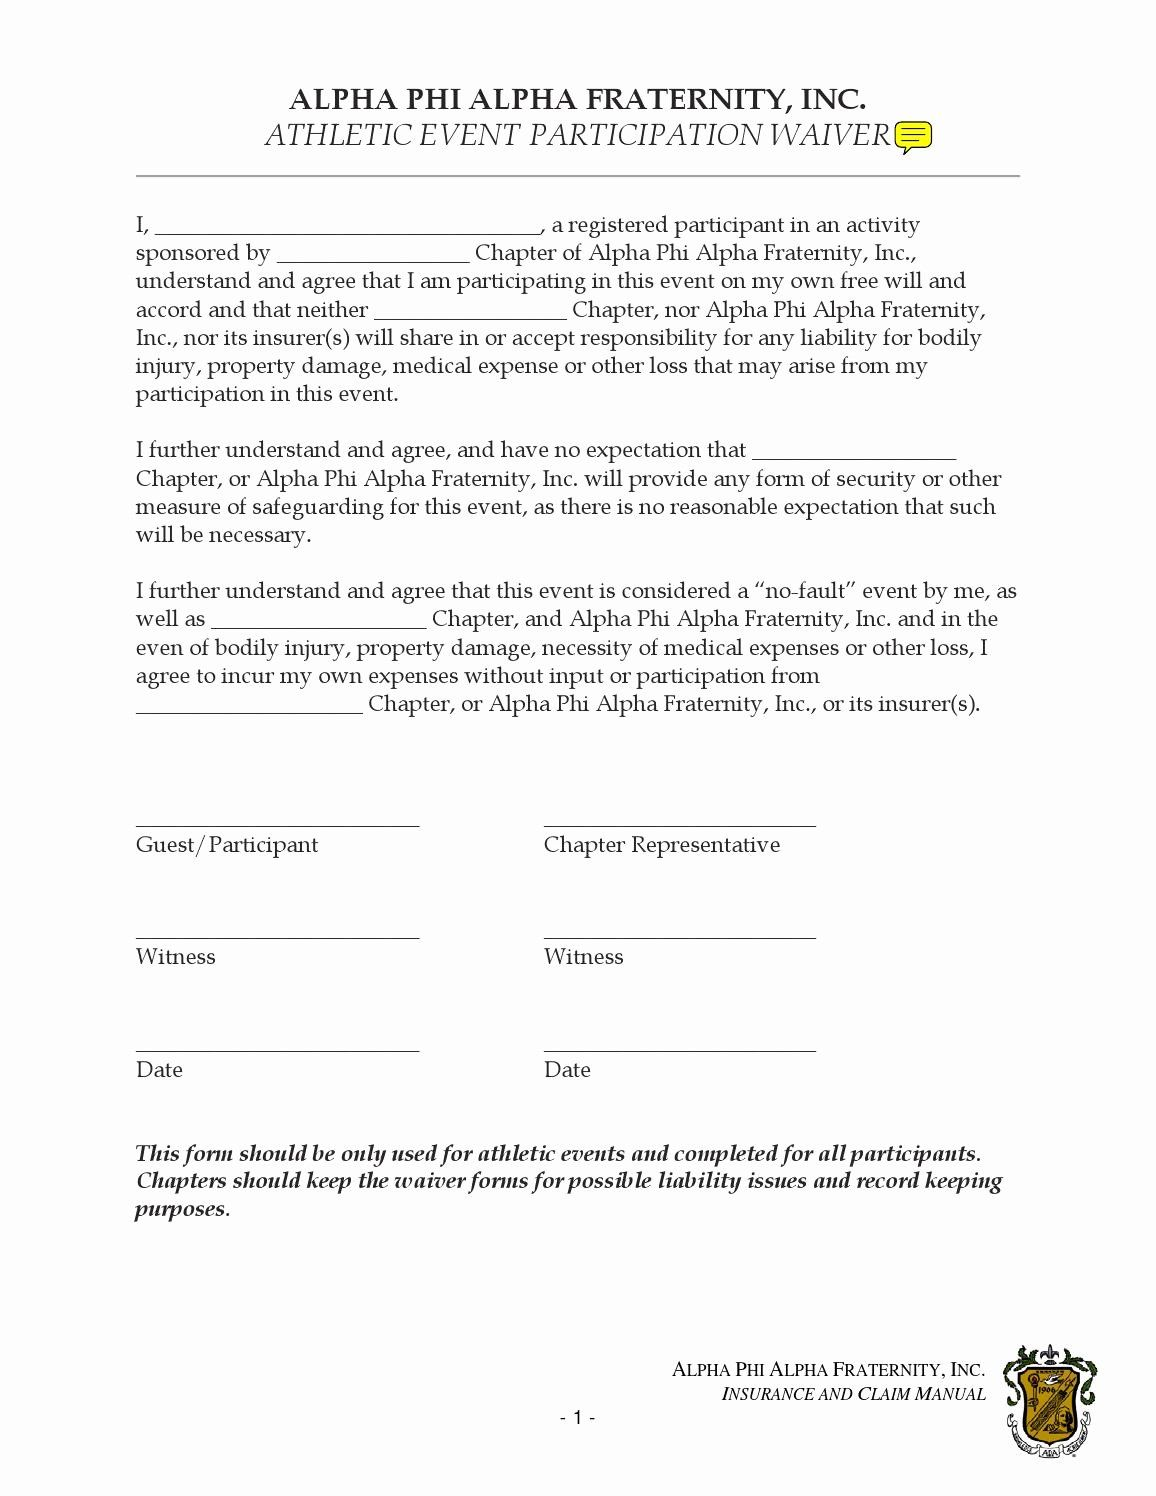 Best Of Participation Waiver Form Template In 2020 Templates